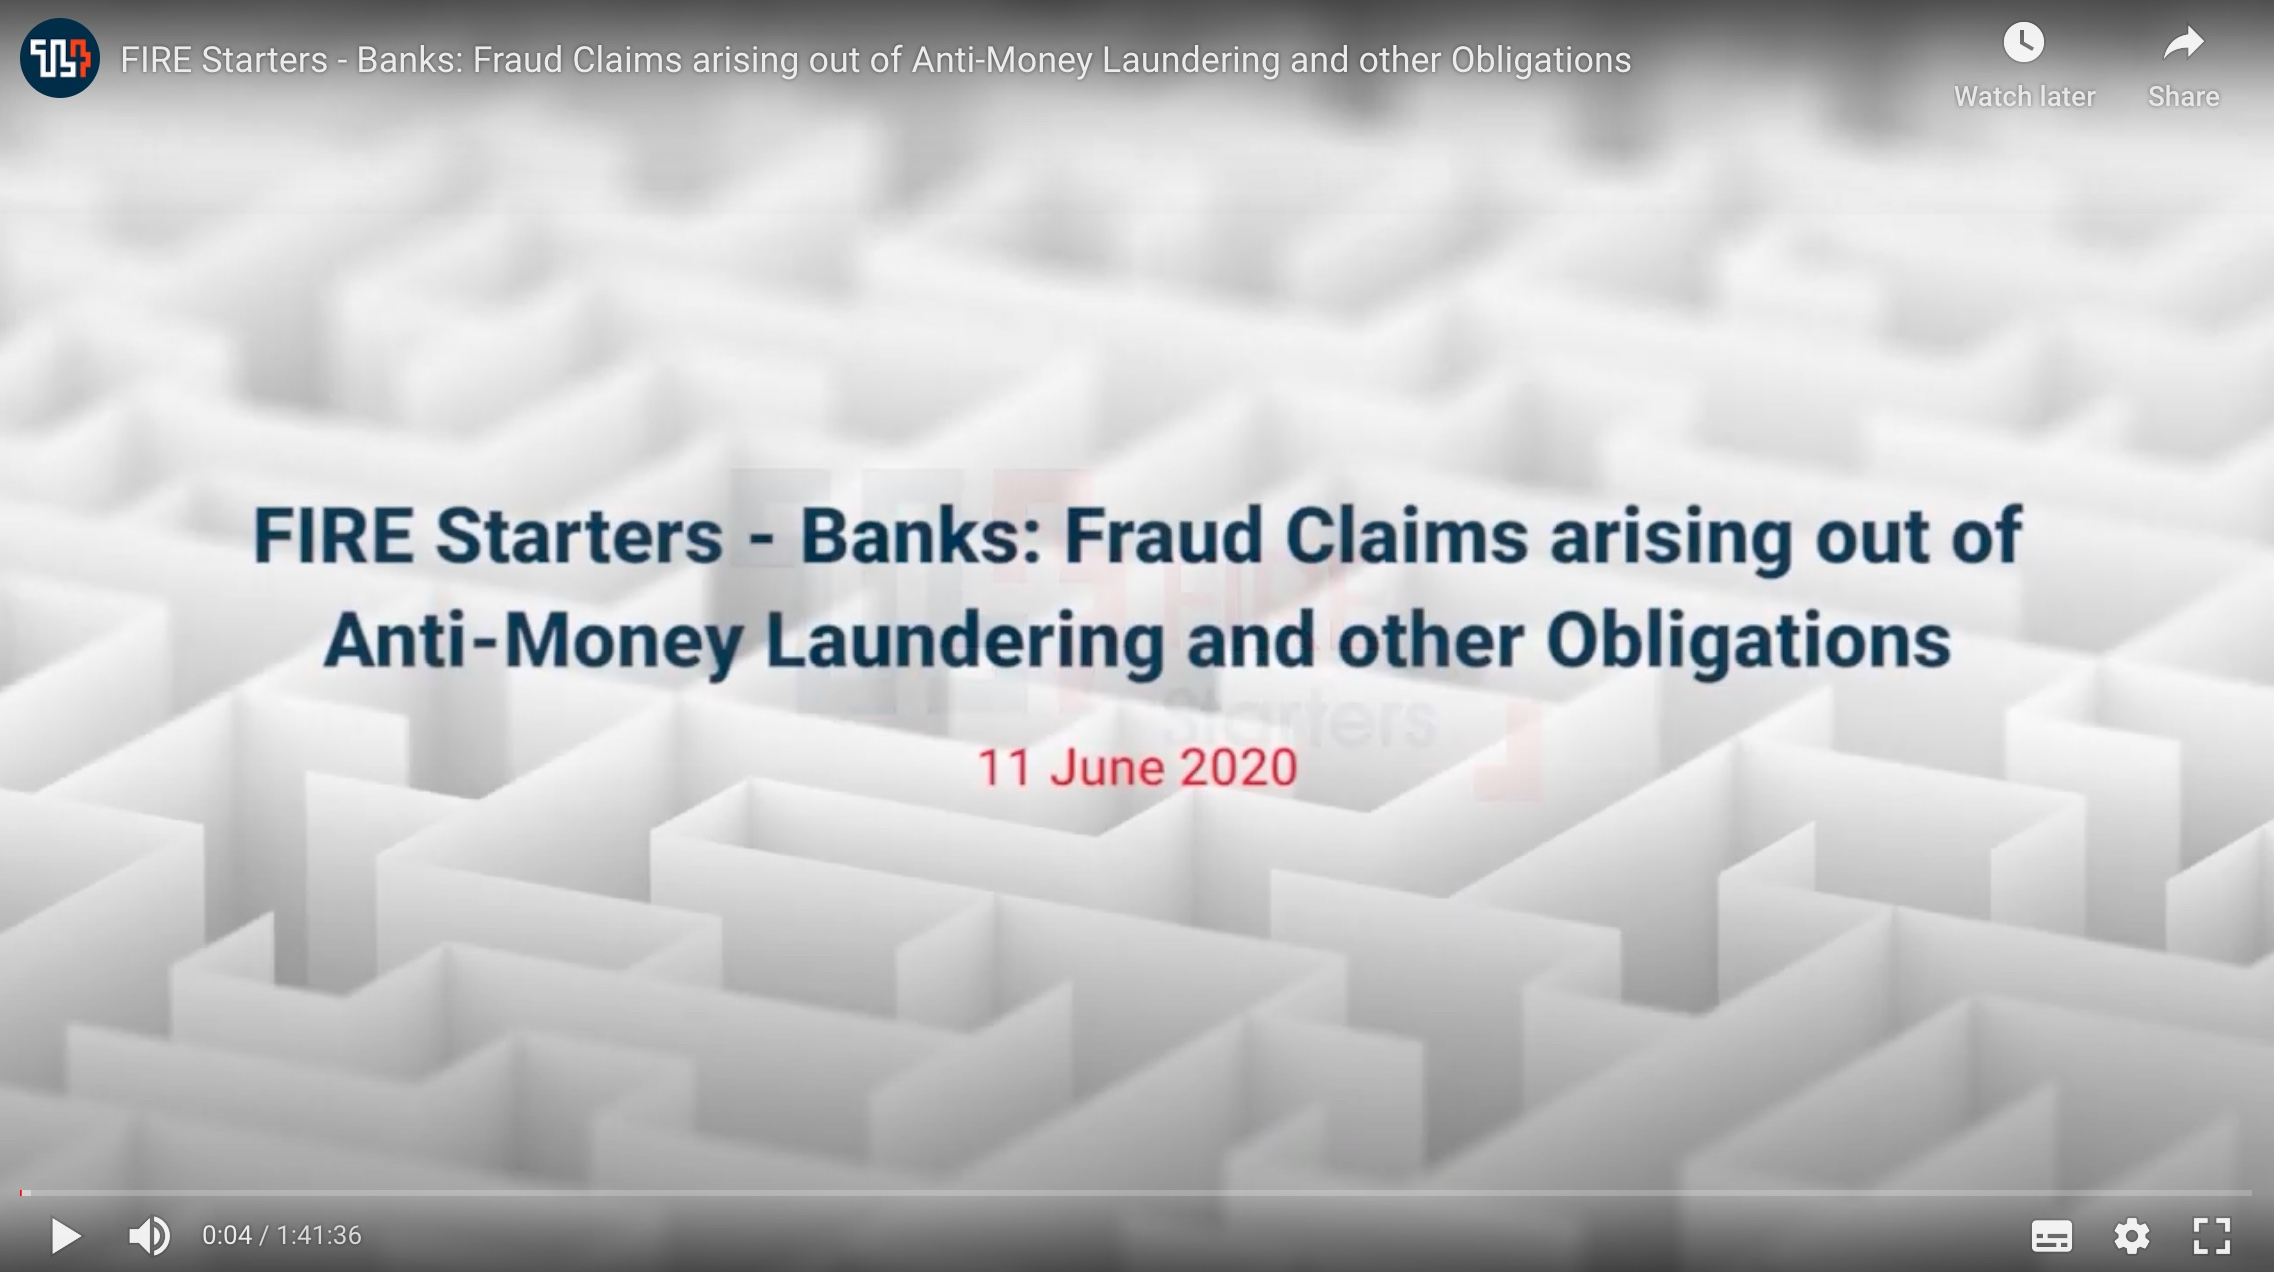 FIRE Starters - Banks: Fraud Claims arising out of Anti-Money Laundering and other Obligations